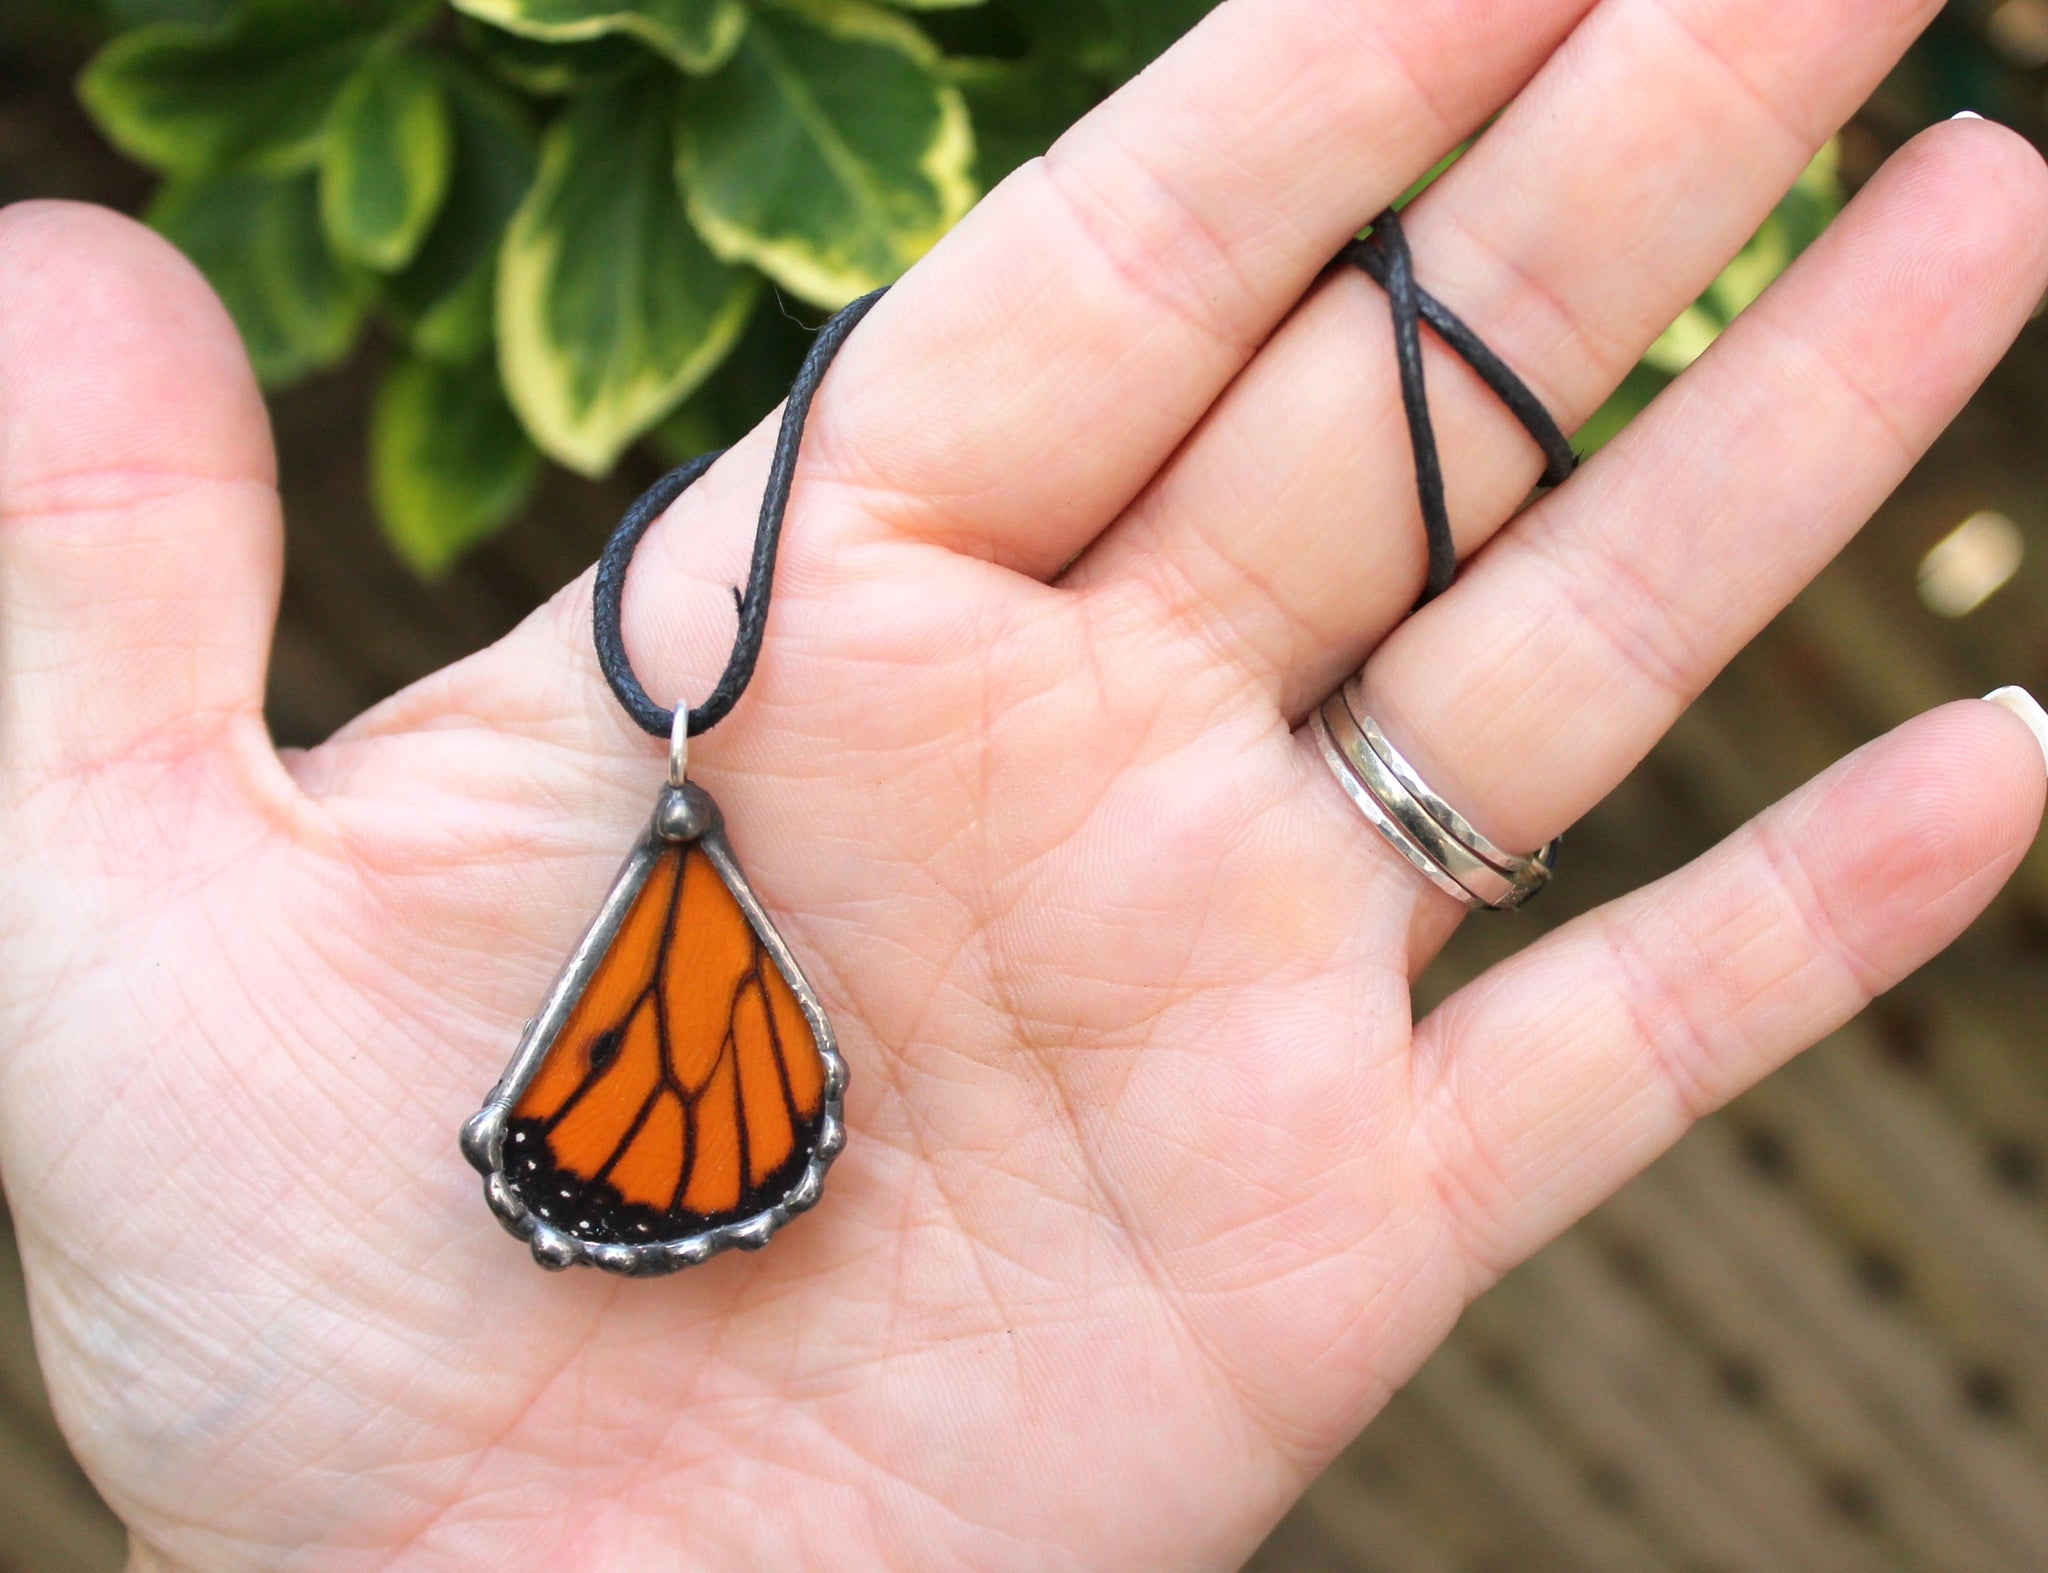 Small Monarch Butterfly Wing Pendant, Monarch Hindwing Pendant, Children's Monarch Butterfly Necklace